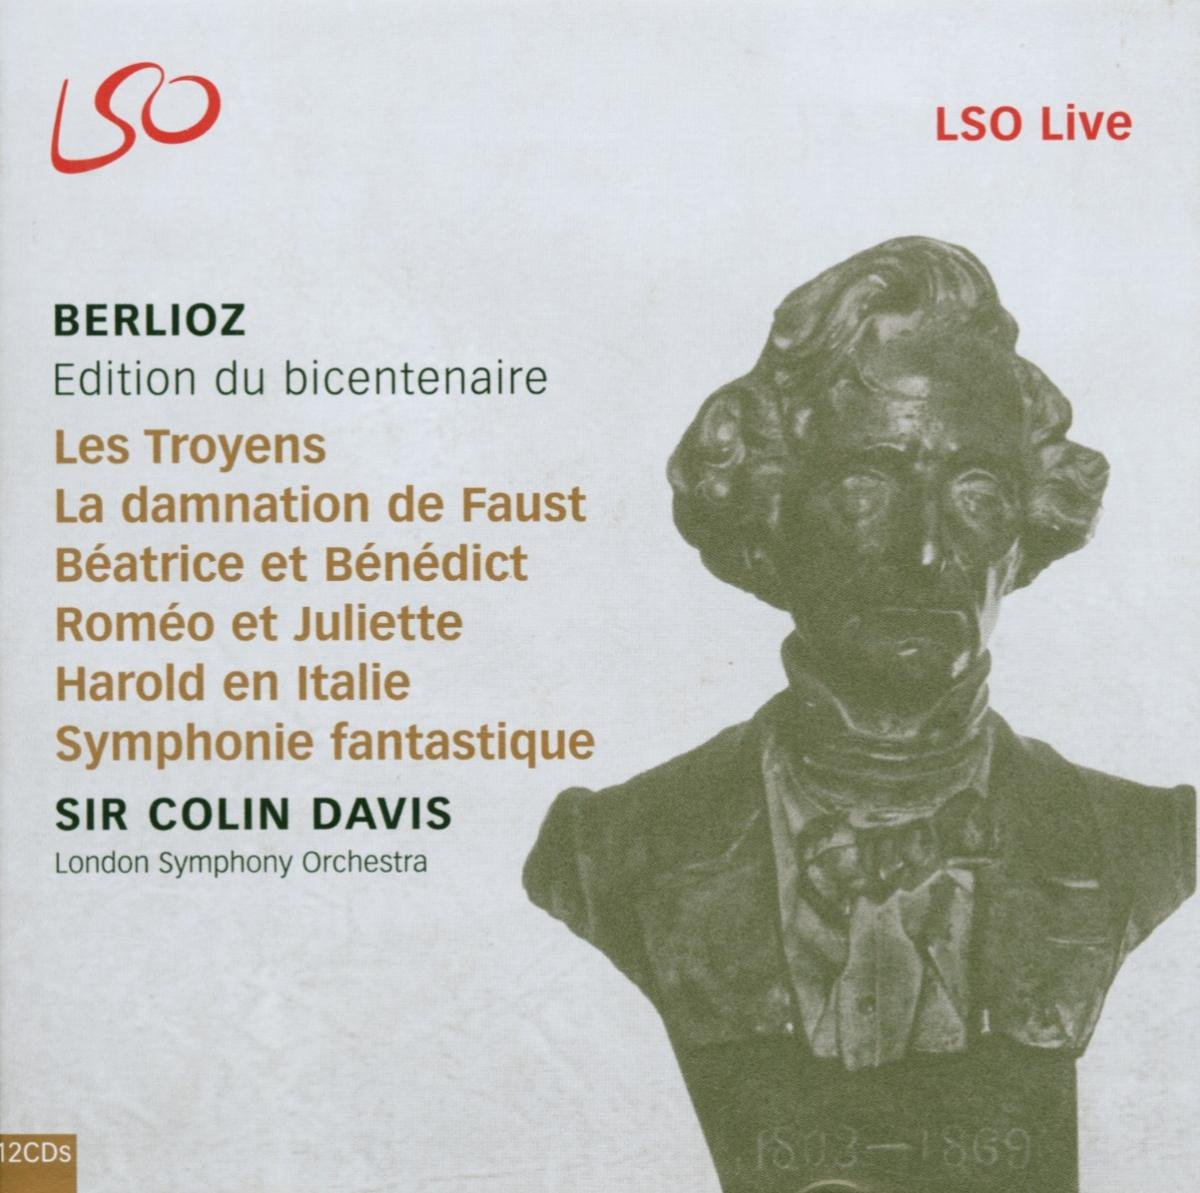 Berlioz: Edition du Bicentenaire by LSO LIVE